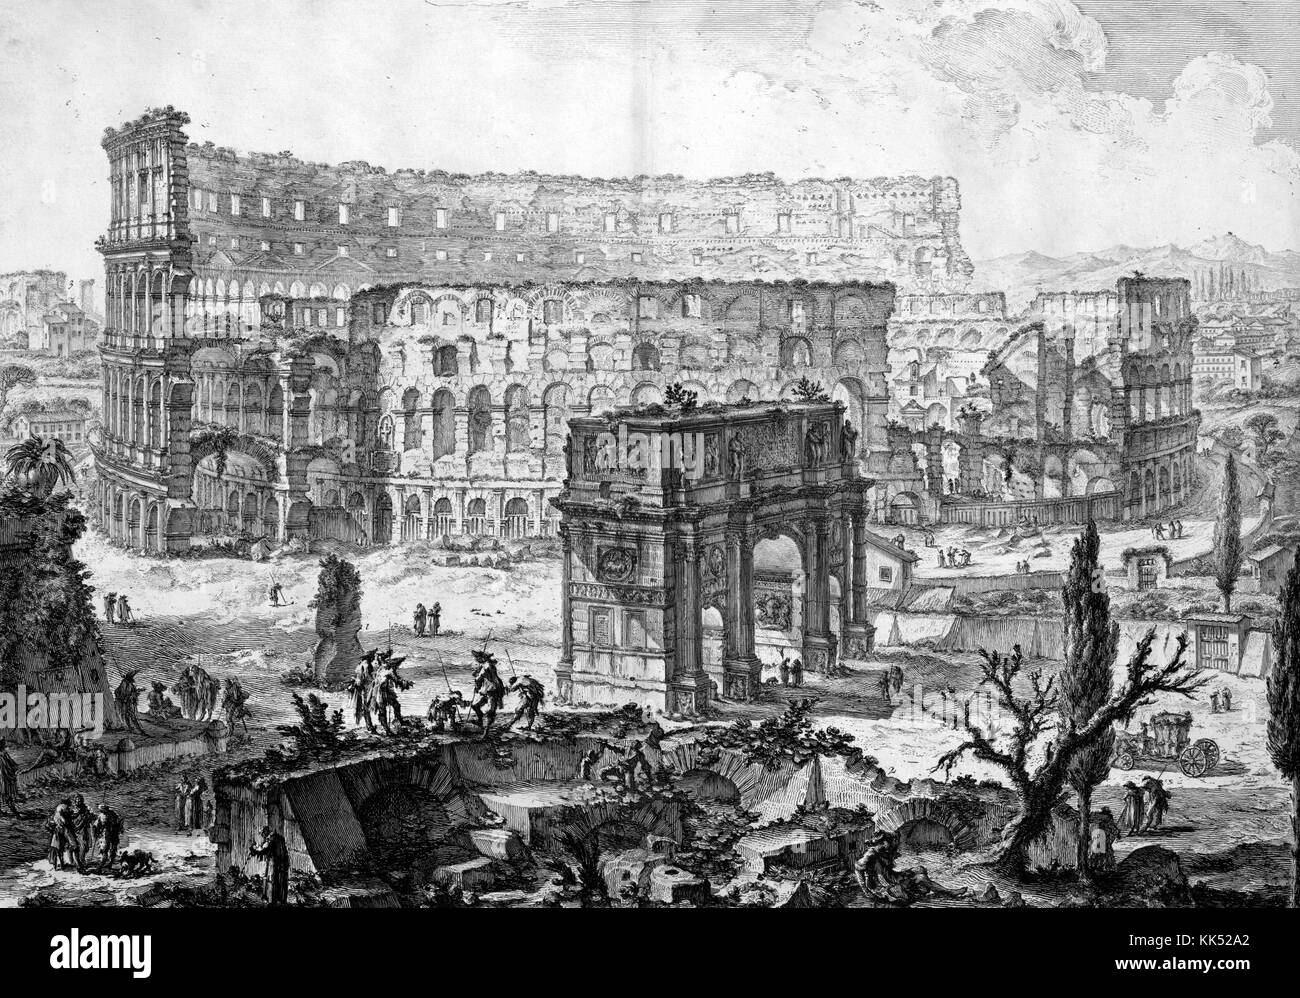 An etching depicting the Colosseum, the image depicts people working and congregating around the large amphitheater, - Stock Image